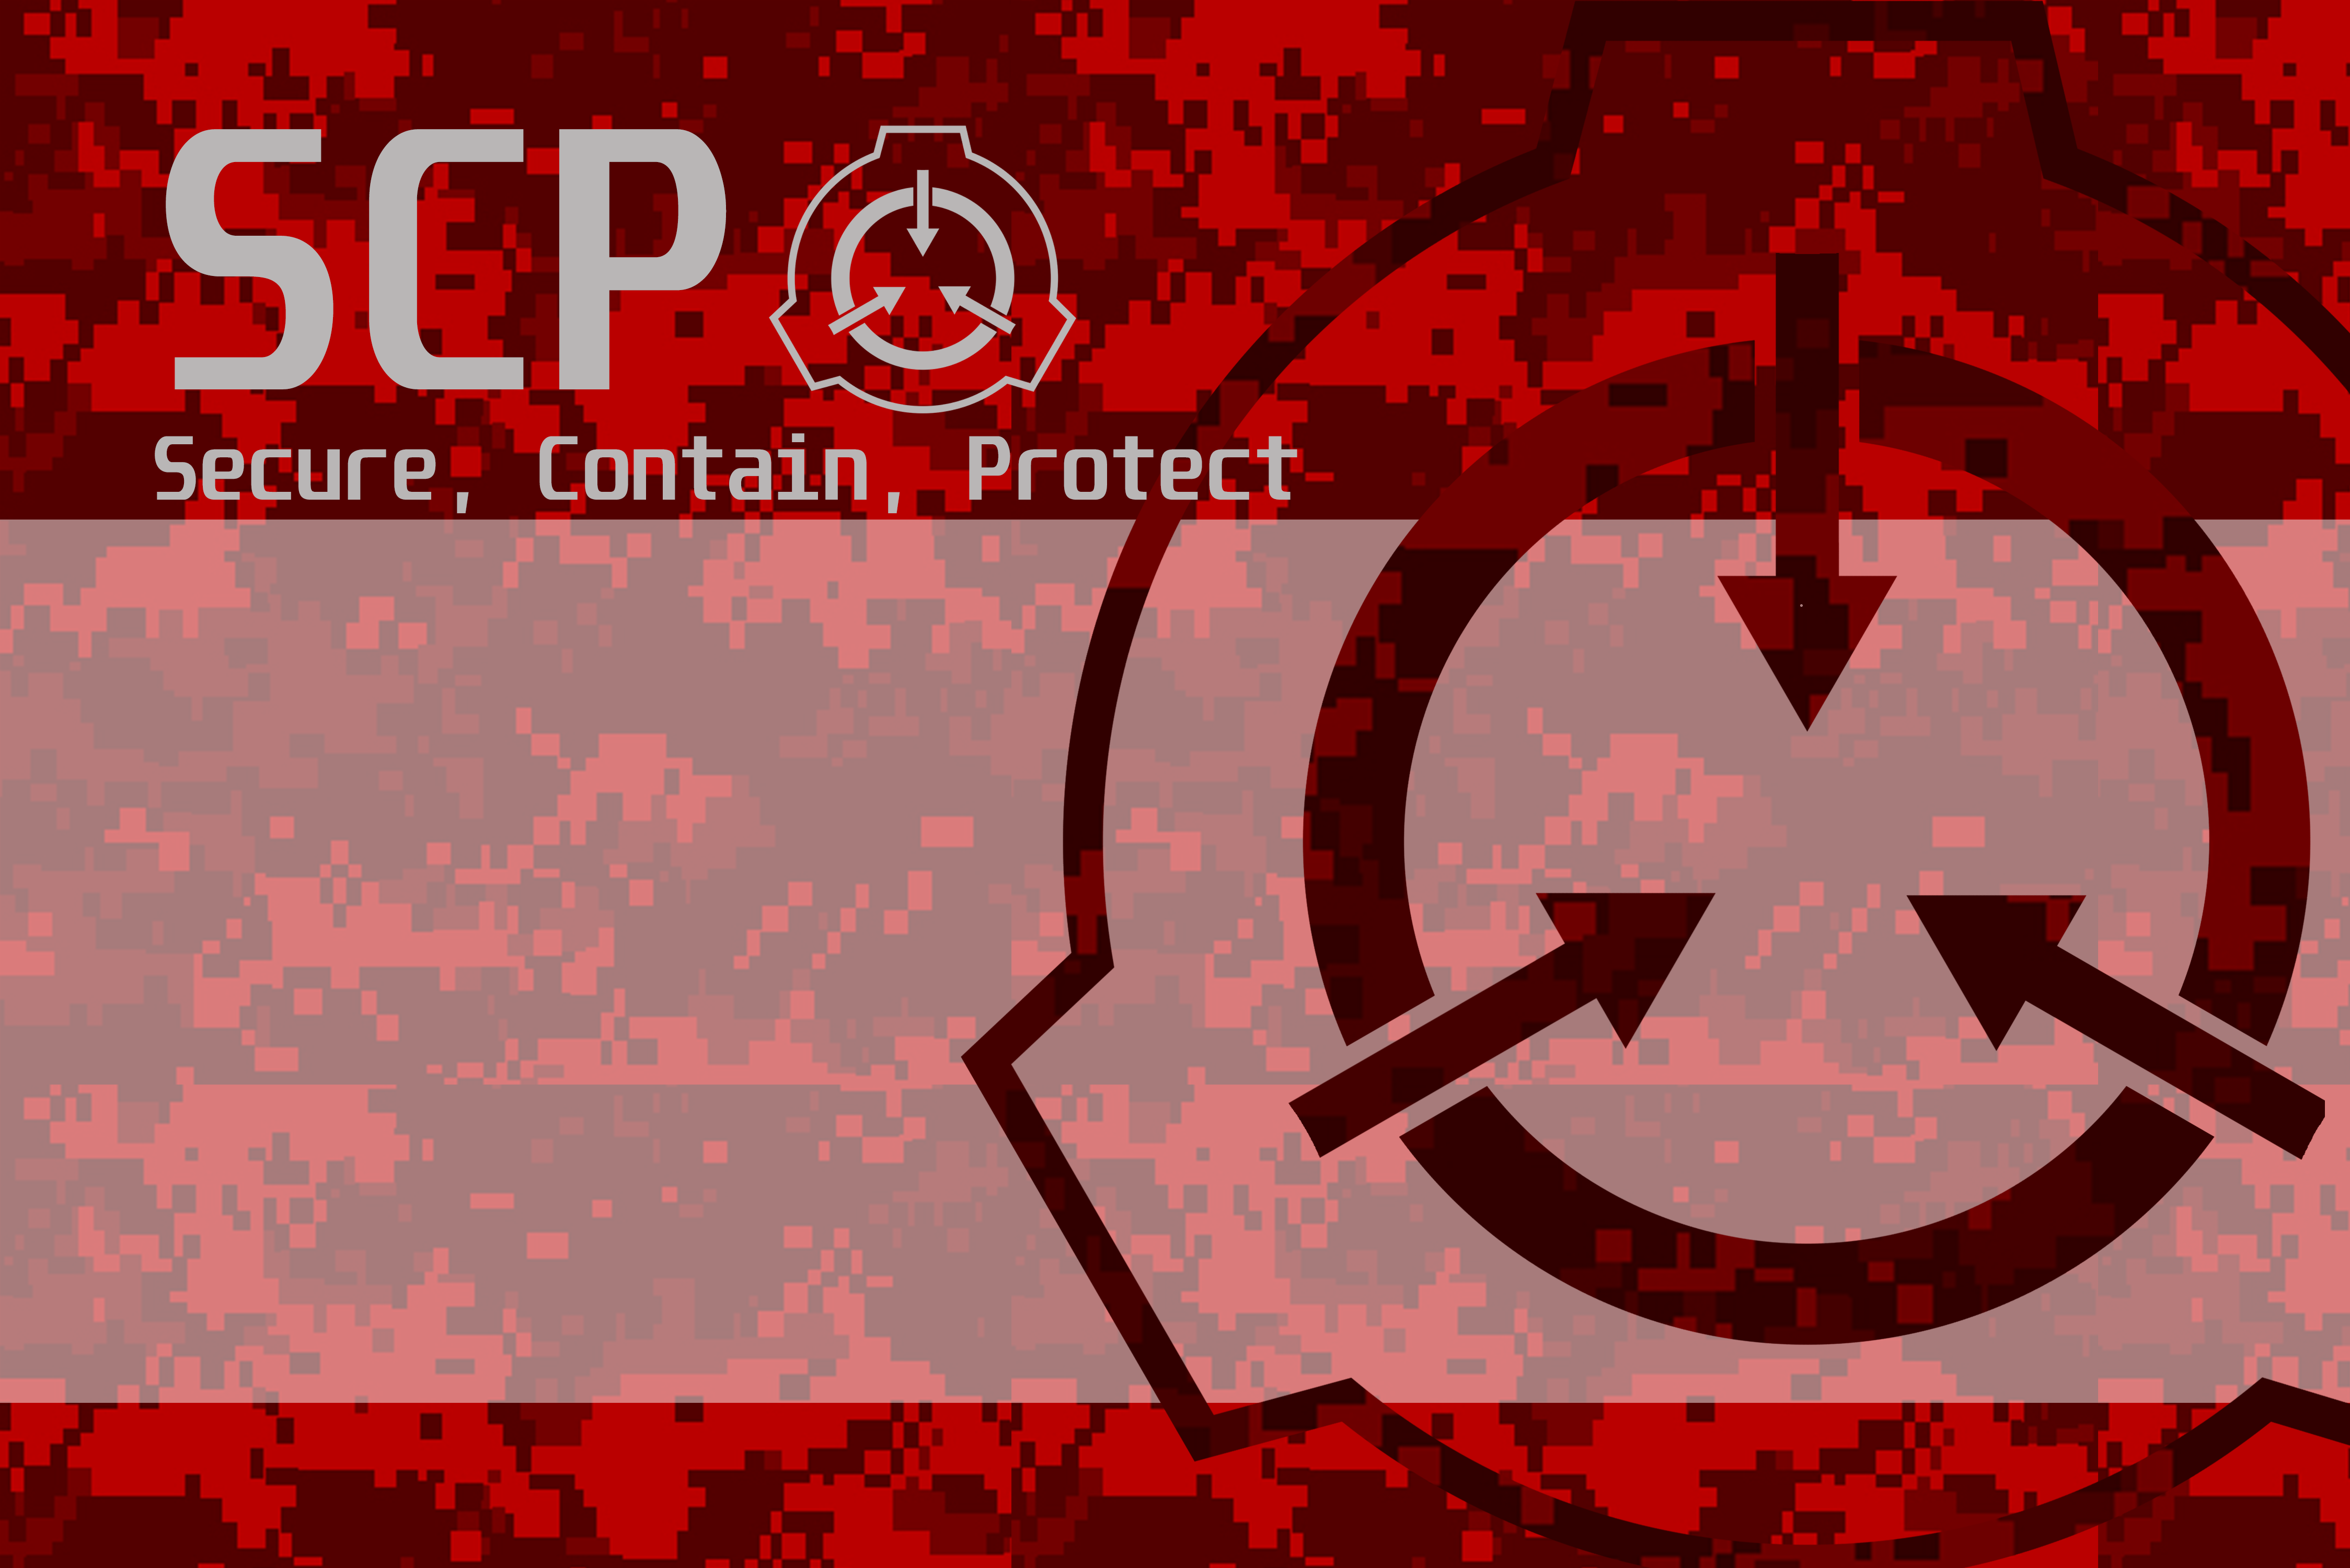 SCP-Ccard-CamoRed-01.png